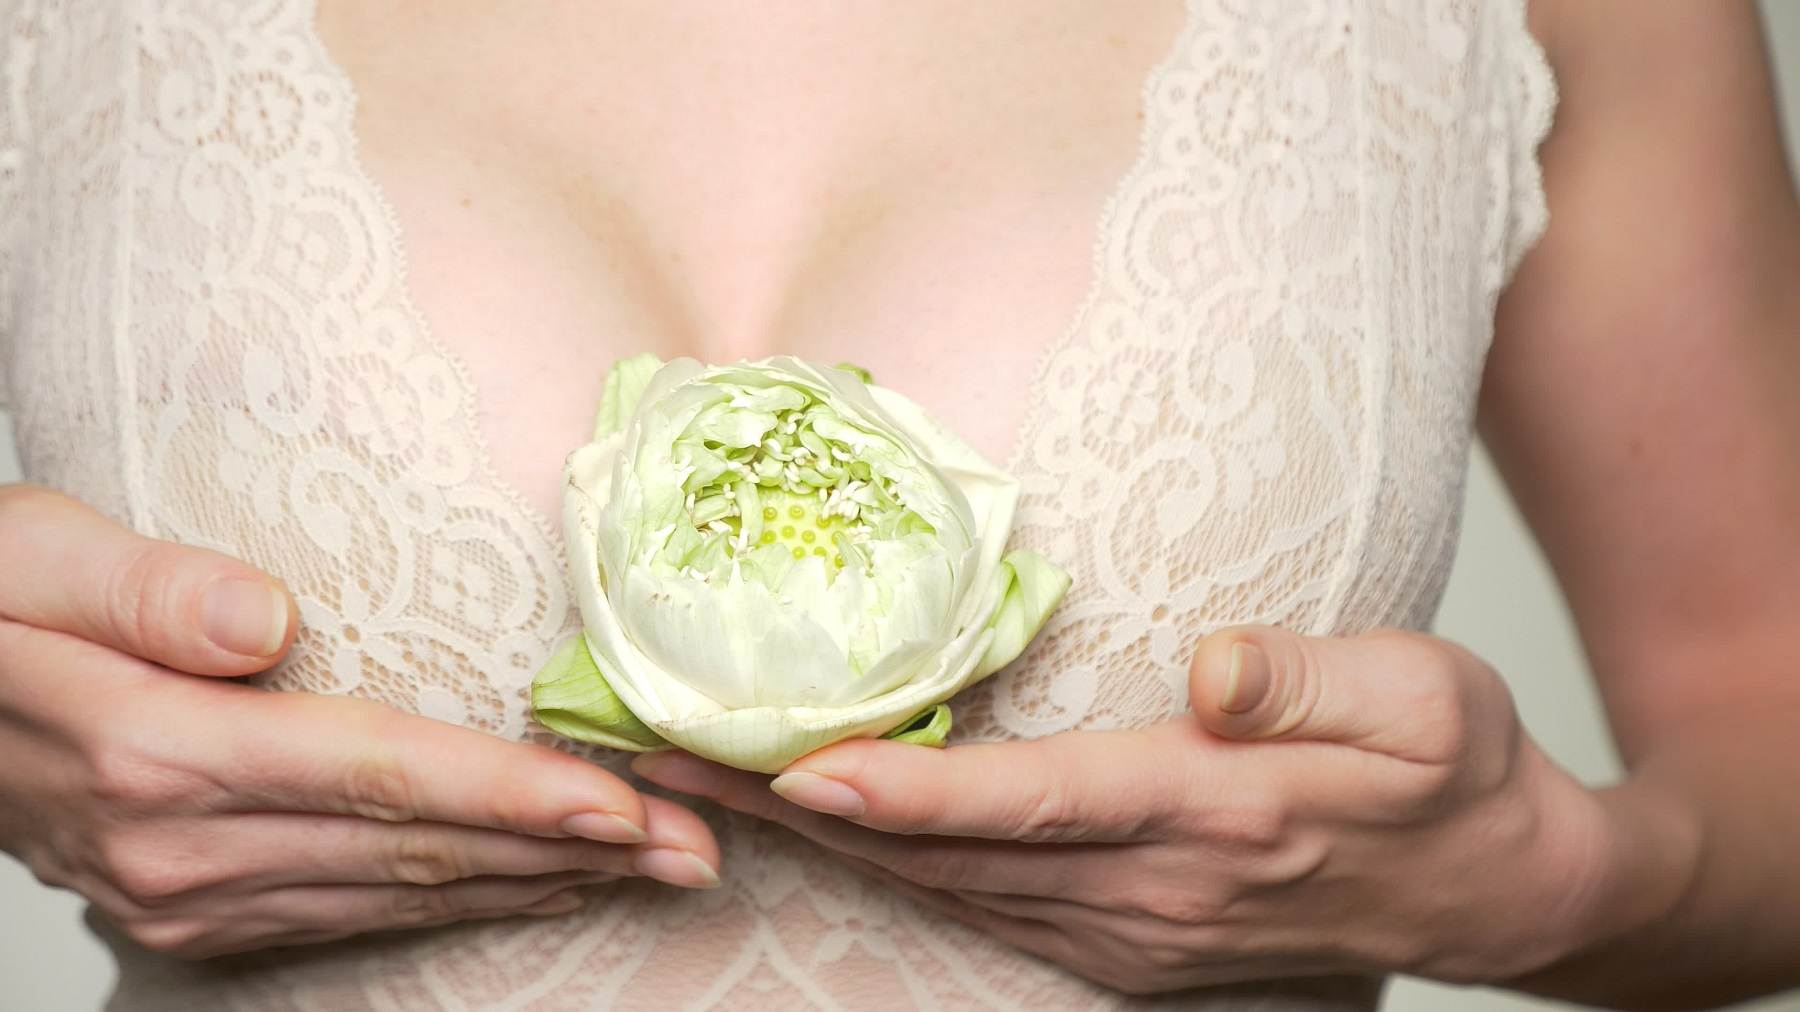 Breast Aware, Breast Care & Breast Scare…Important Lessons from My Journey